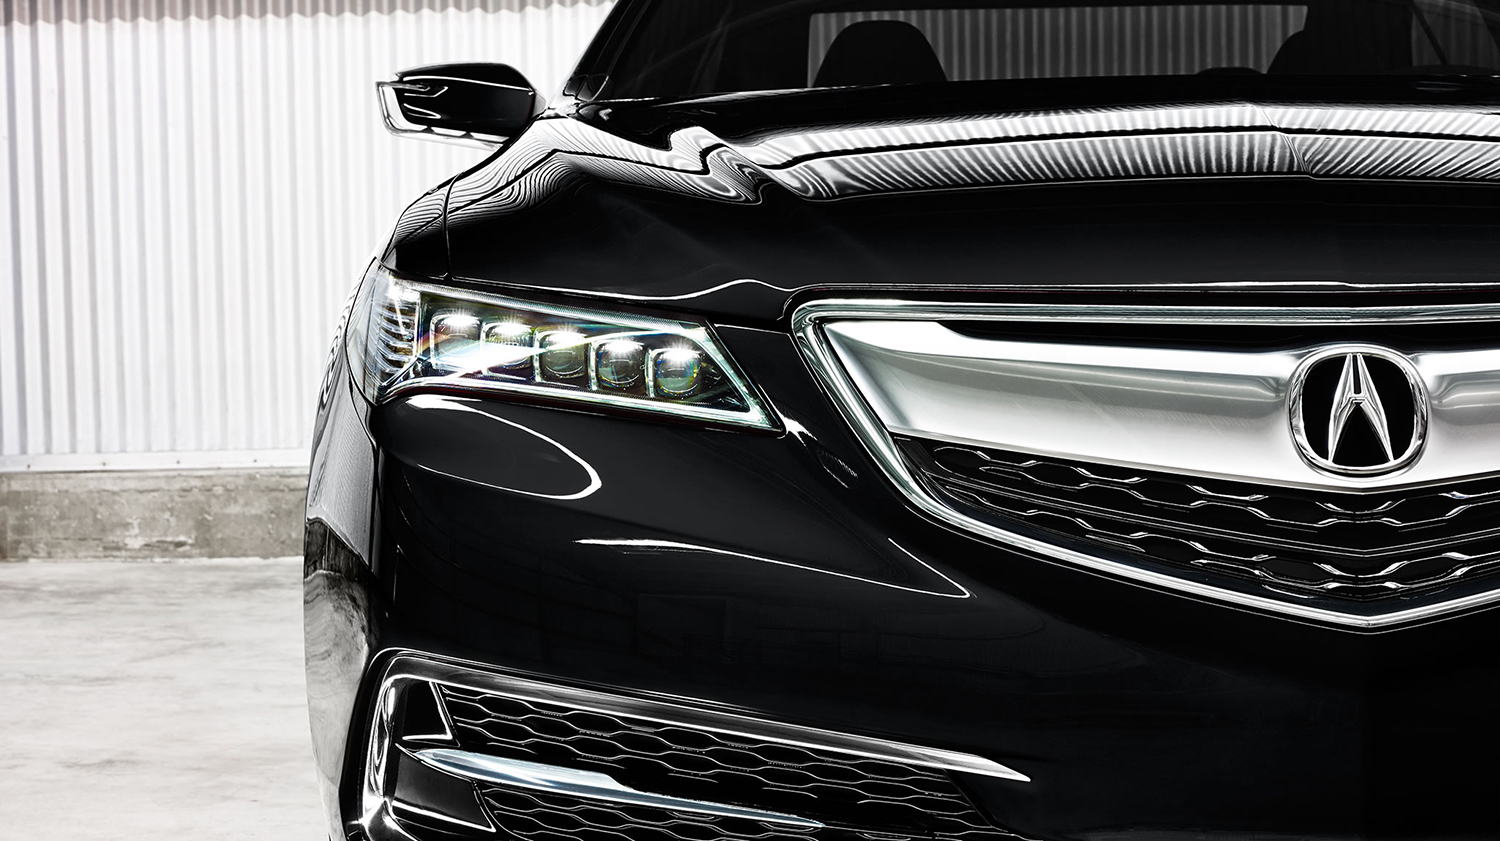 2017 Acura TLX Jewel Eye LED Headlights